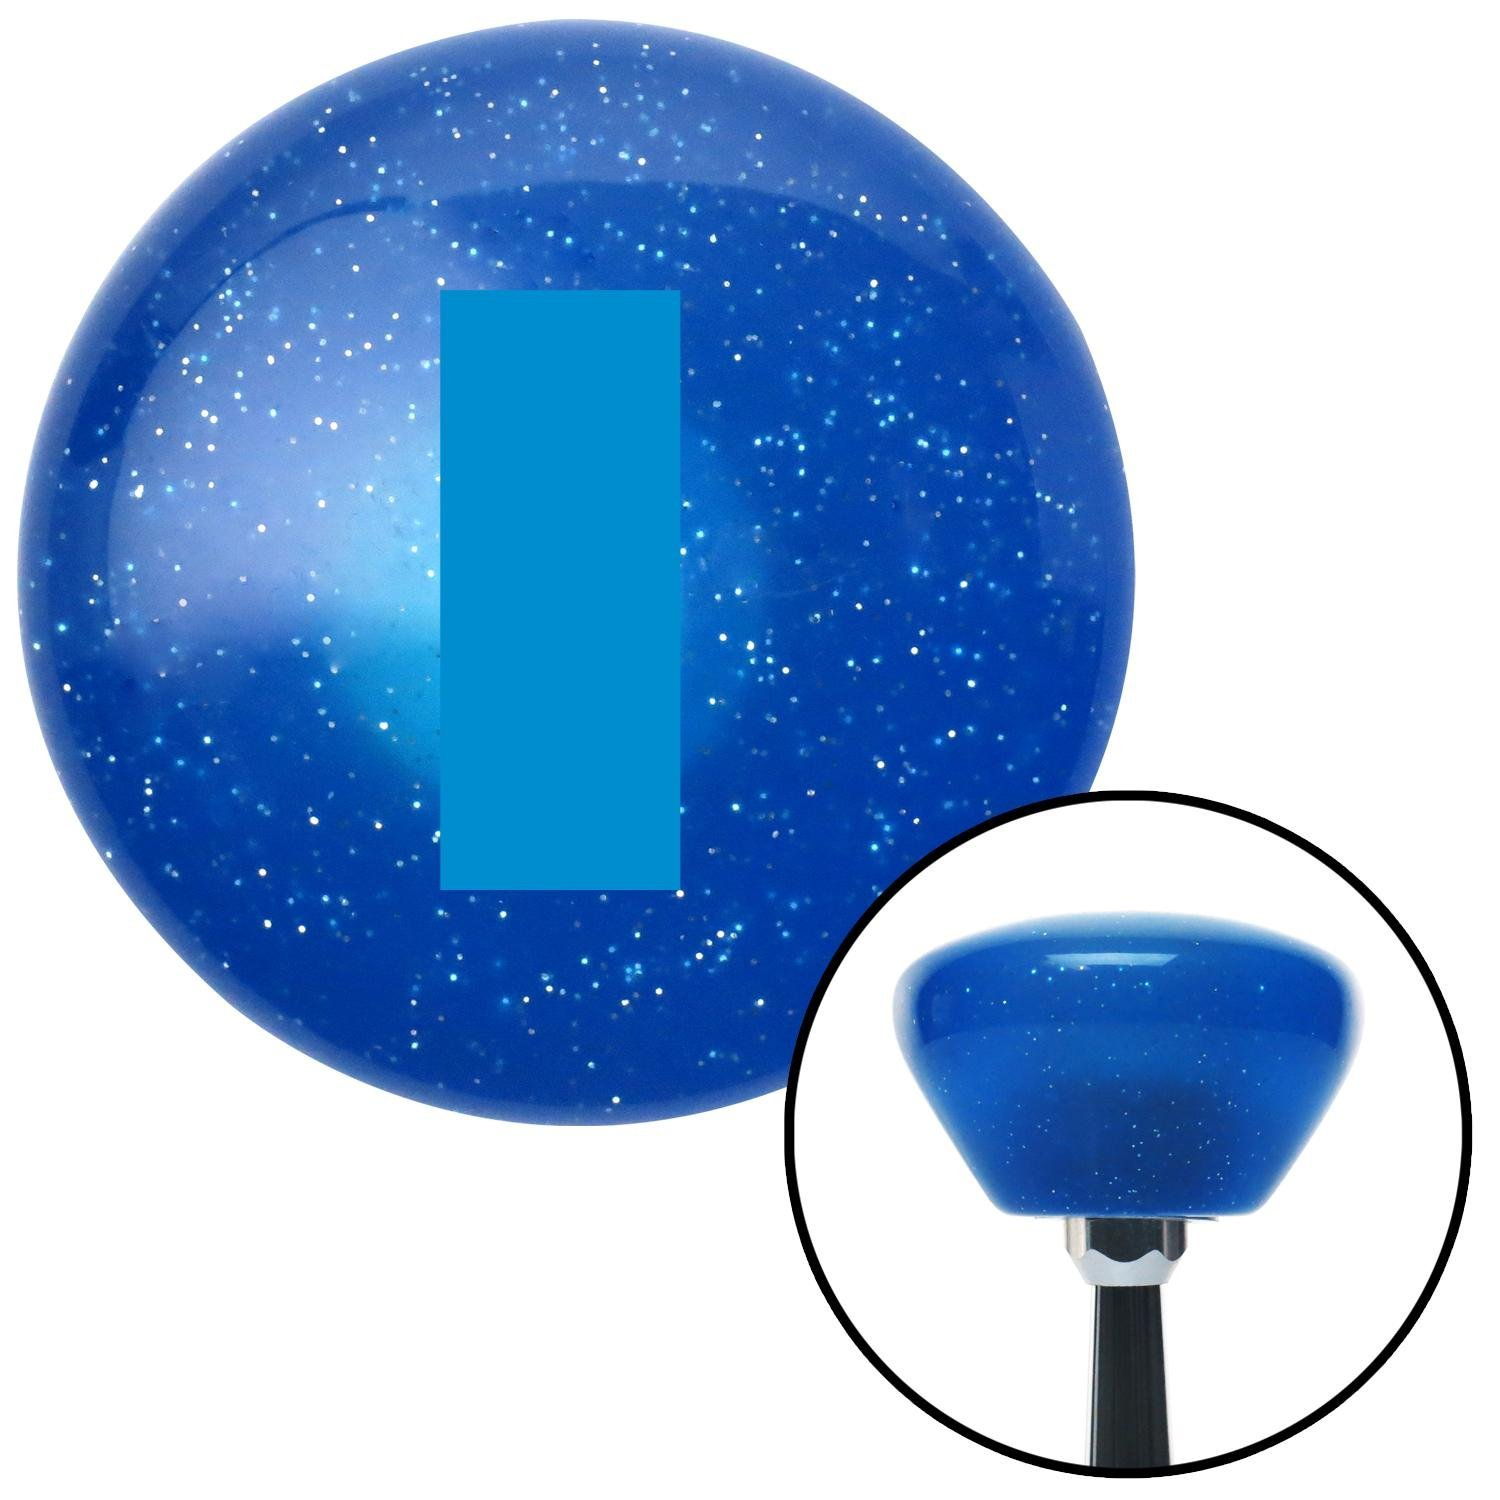 Blue Officer 01-2n Lt. and 1d Lt. American Shifter 186725 Blue Retro Metal Flake Shift Knob with M16 x 1.5 Insert